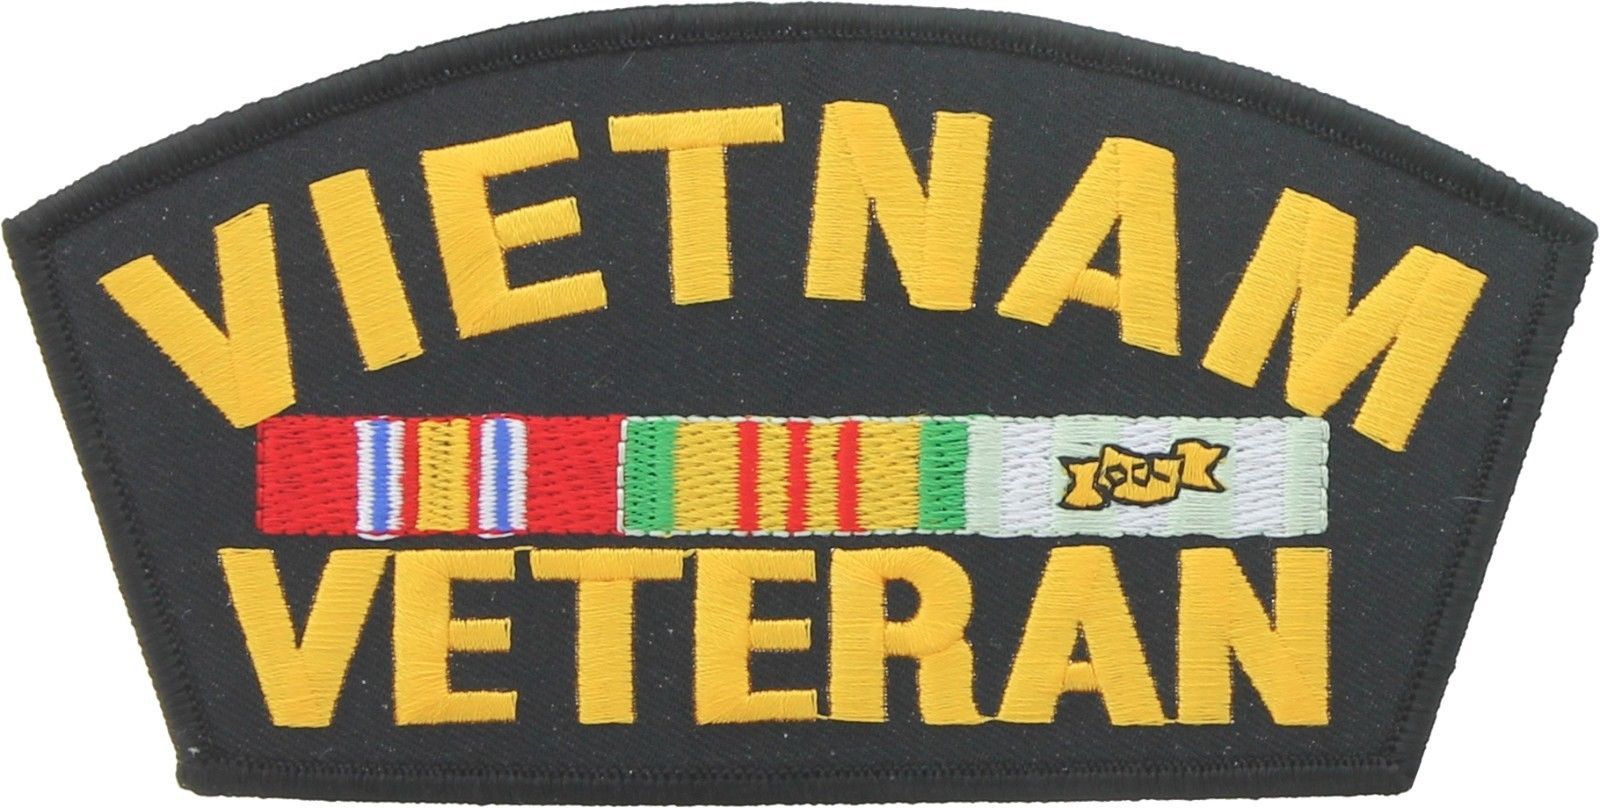 Vietnam Veteran Iron/Sew on Patch - 6 Inches